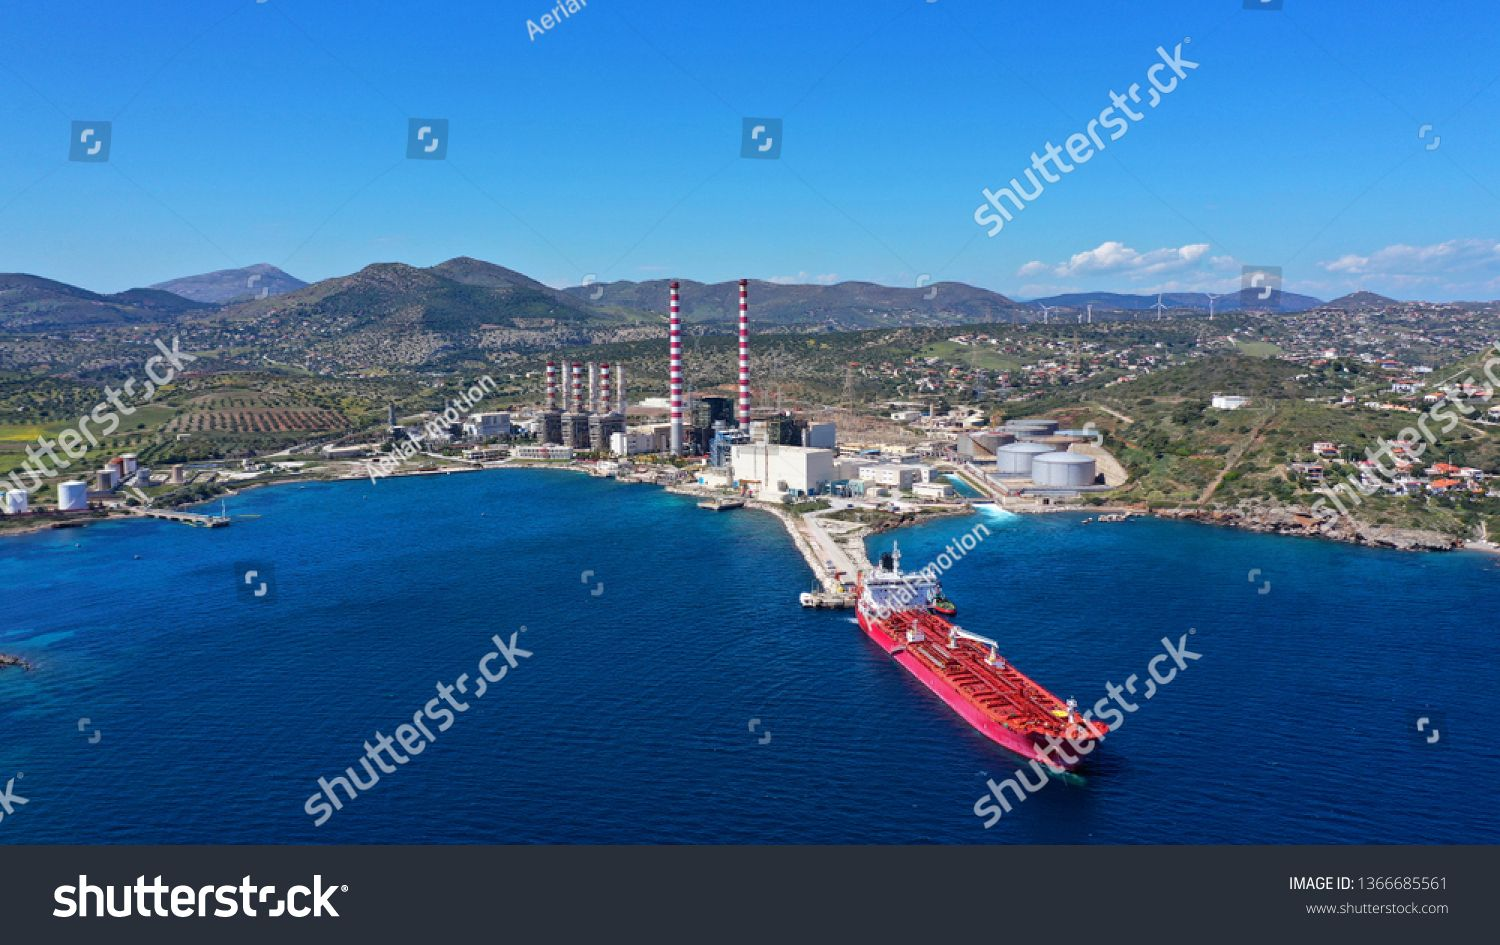 Aerial drone photo of industrial power plant by the sea in